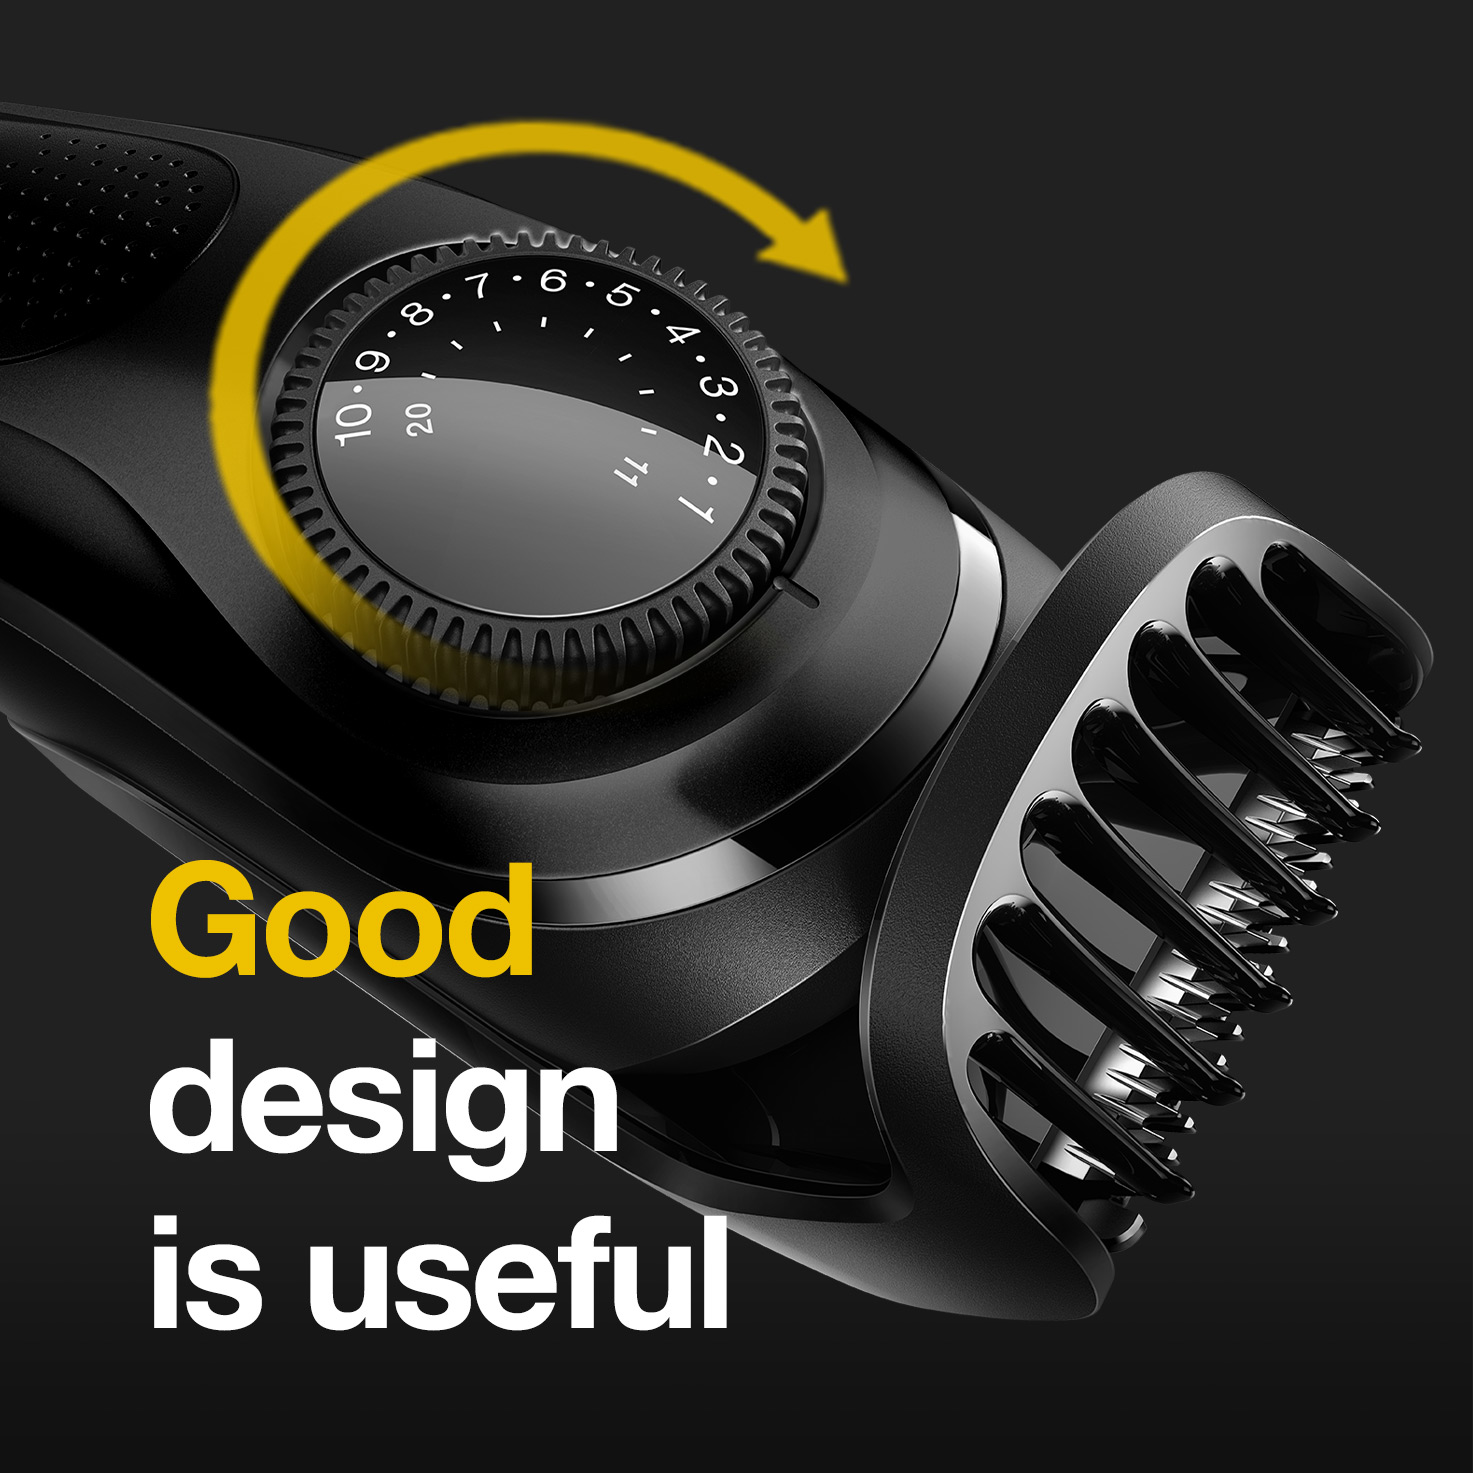 Good design is useful